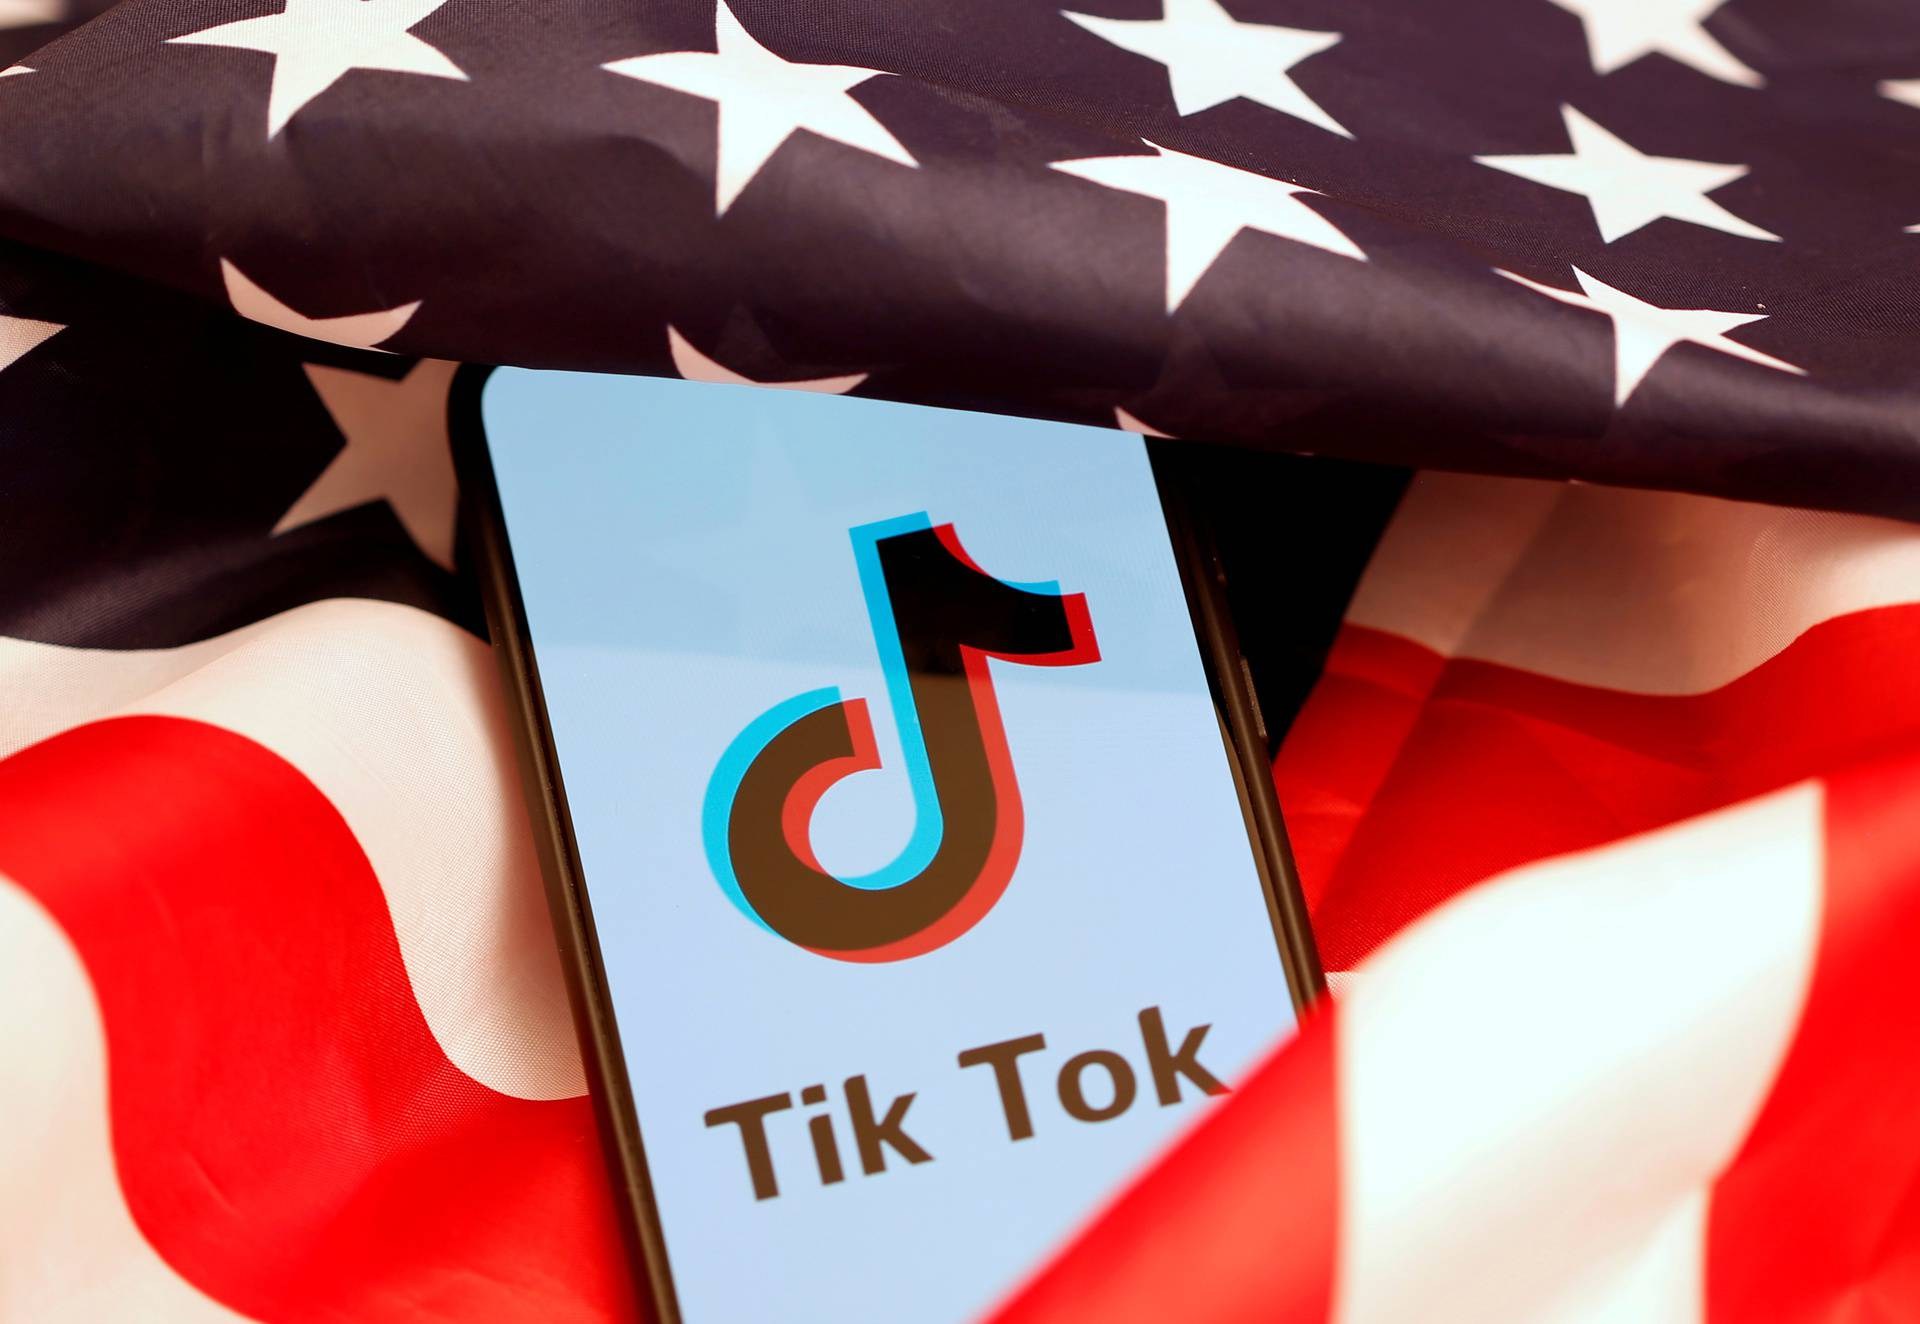 FILE PHOTO: Tik Tok logo is displayed on the smartphone while standing on the U.S. flag in this illustration